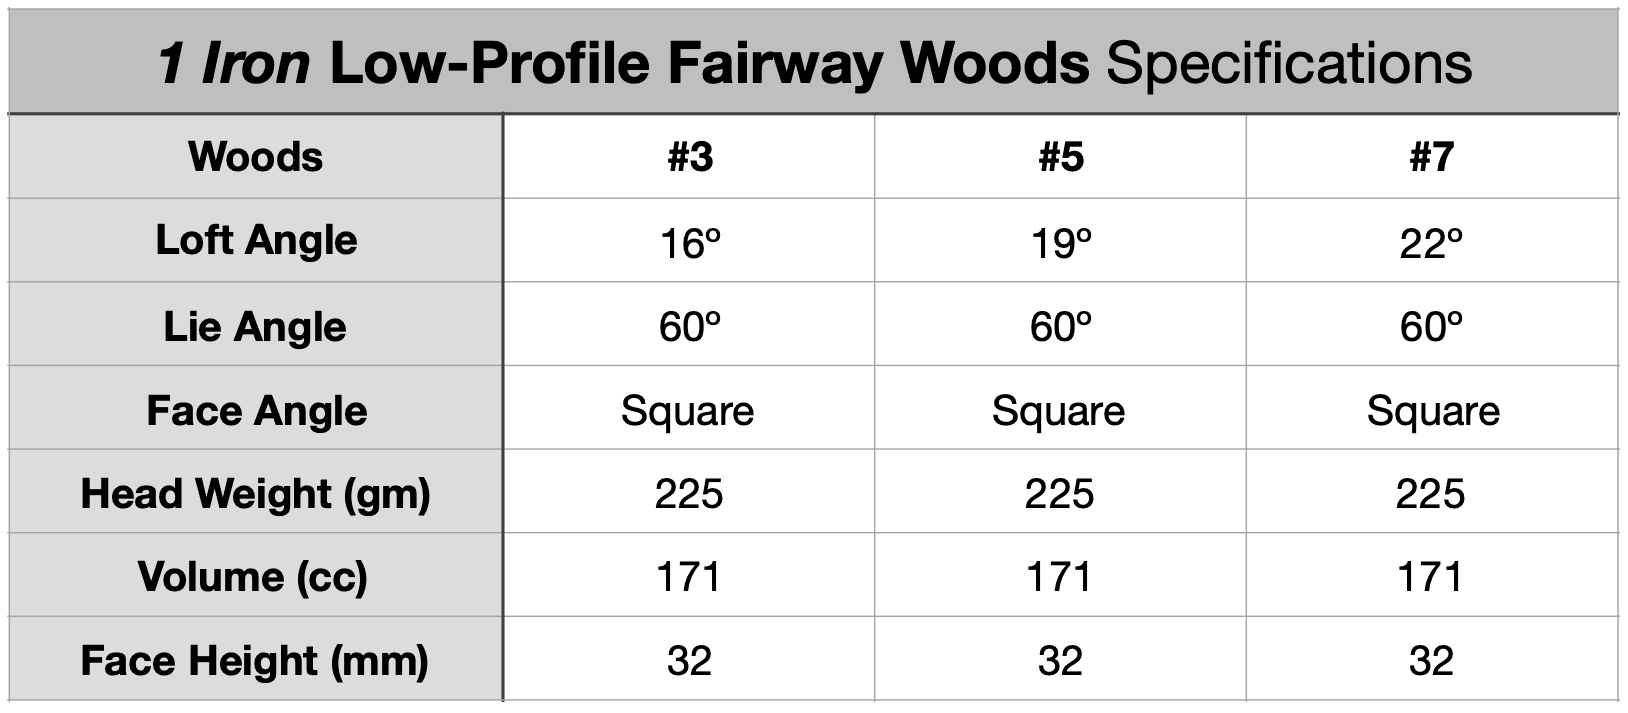 1 Iron Low-Profile Fairway Woods Specifications Chart